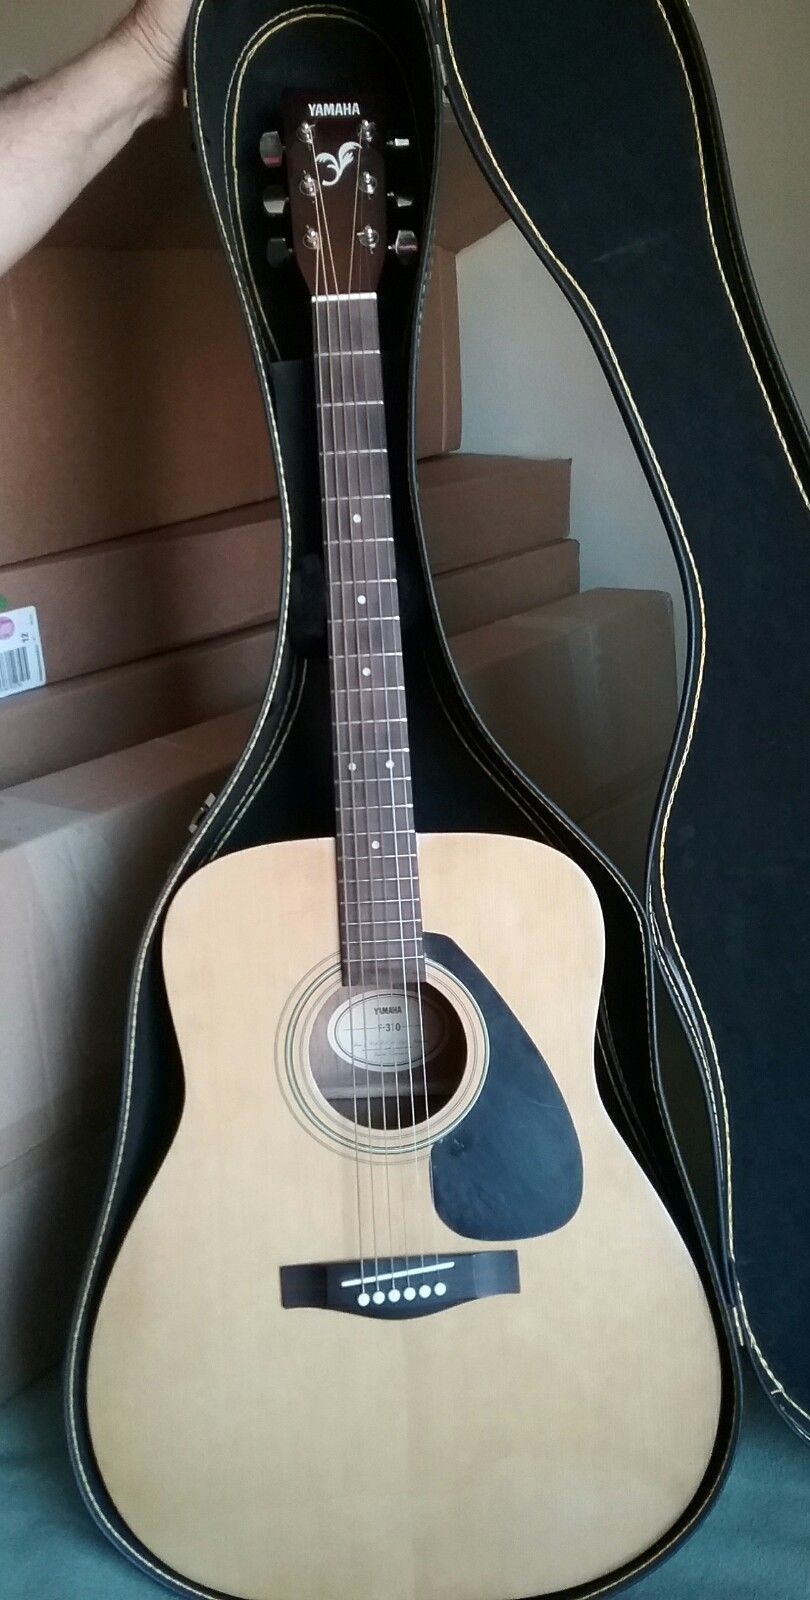 Yamaha Acoustic Guitars That Is Really Awesome Yamahaacousticguitars Yamaha Guitar Yamaha F310 Acoustic Guitar